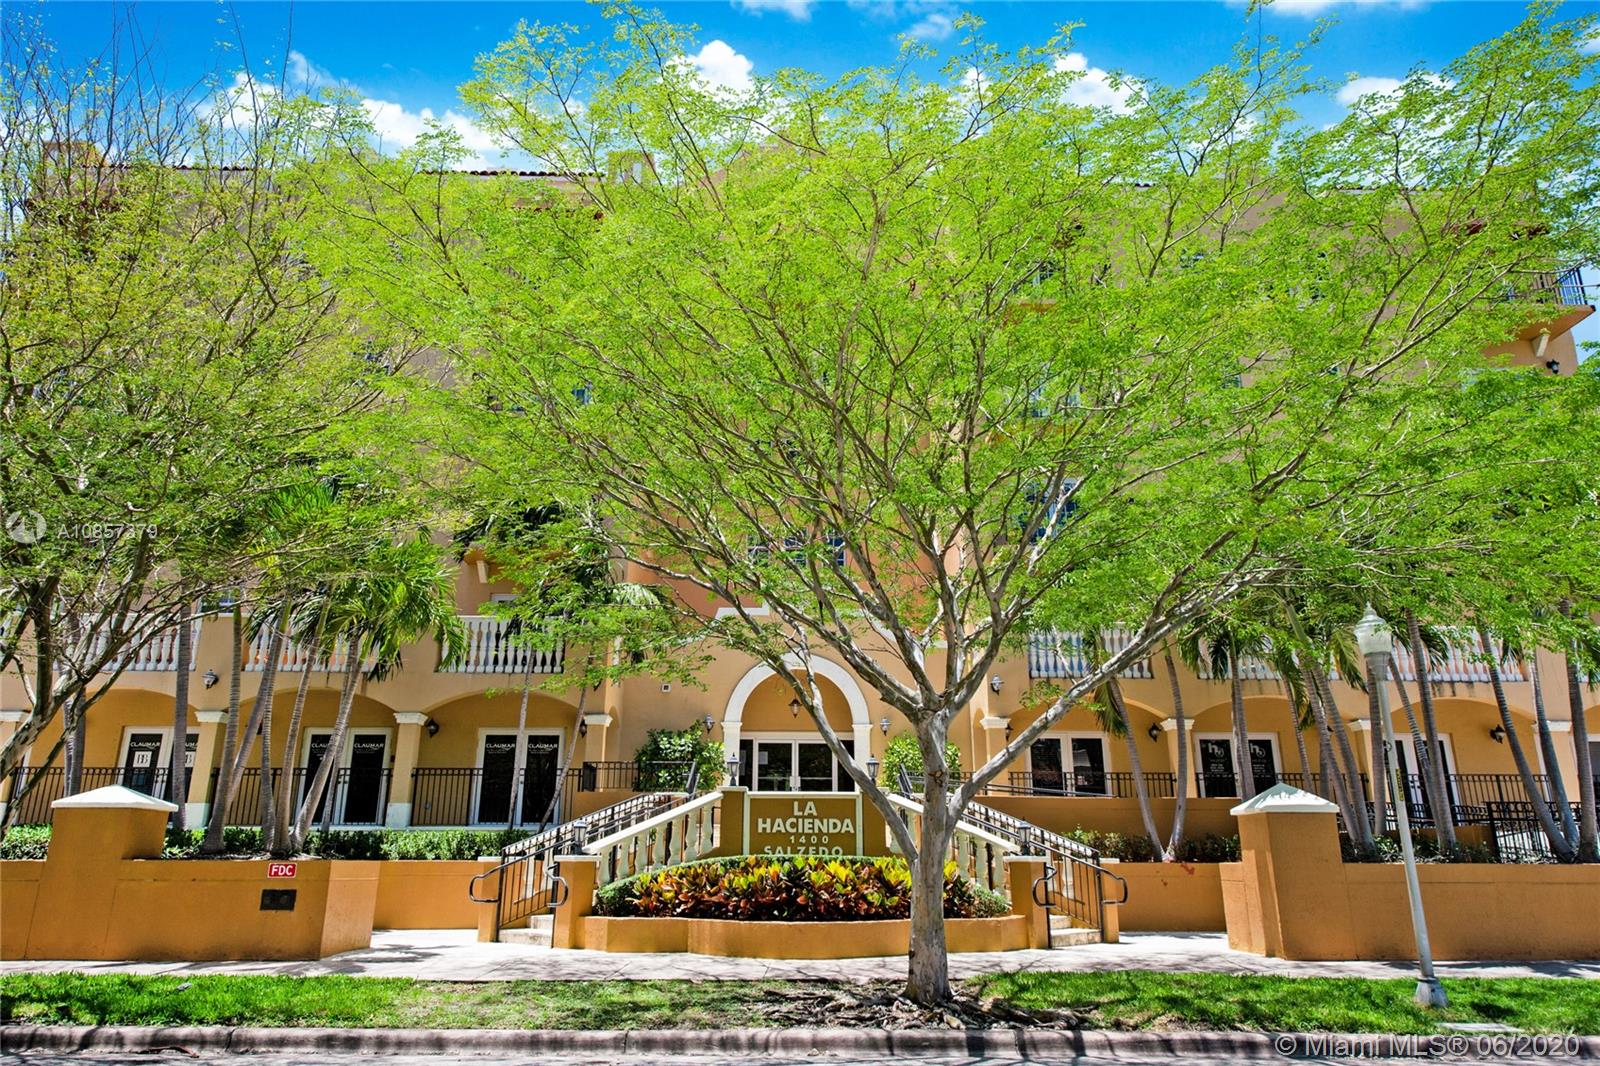 1400 Salzedo St # 305, Coral Gables, Florida 33134, 3 Bedrooms Bedrooms, ,4 BathroomsBathrooms,Residential,For Sale,1400 Salzedo St # 305,A10857379